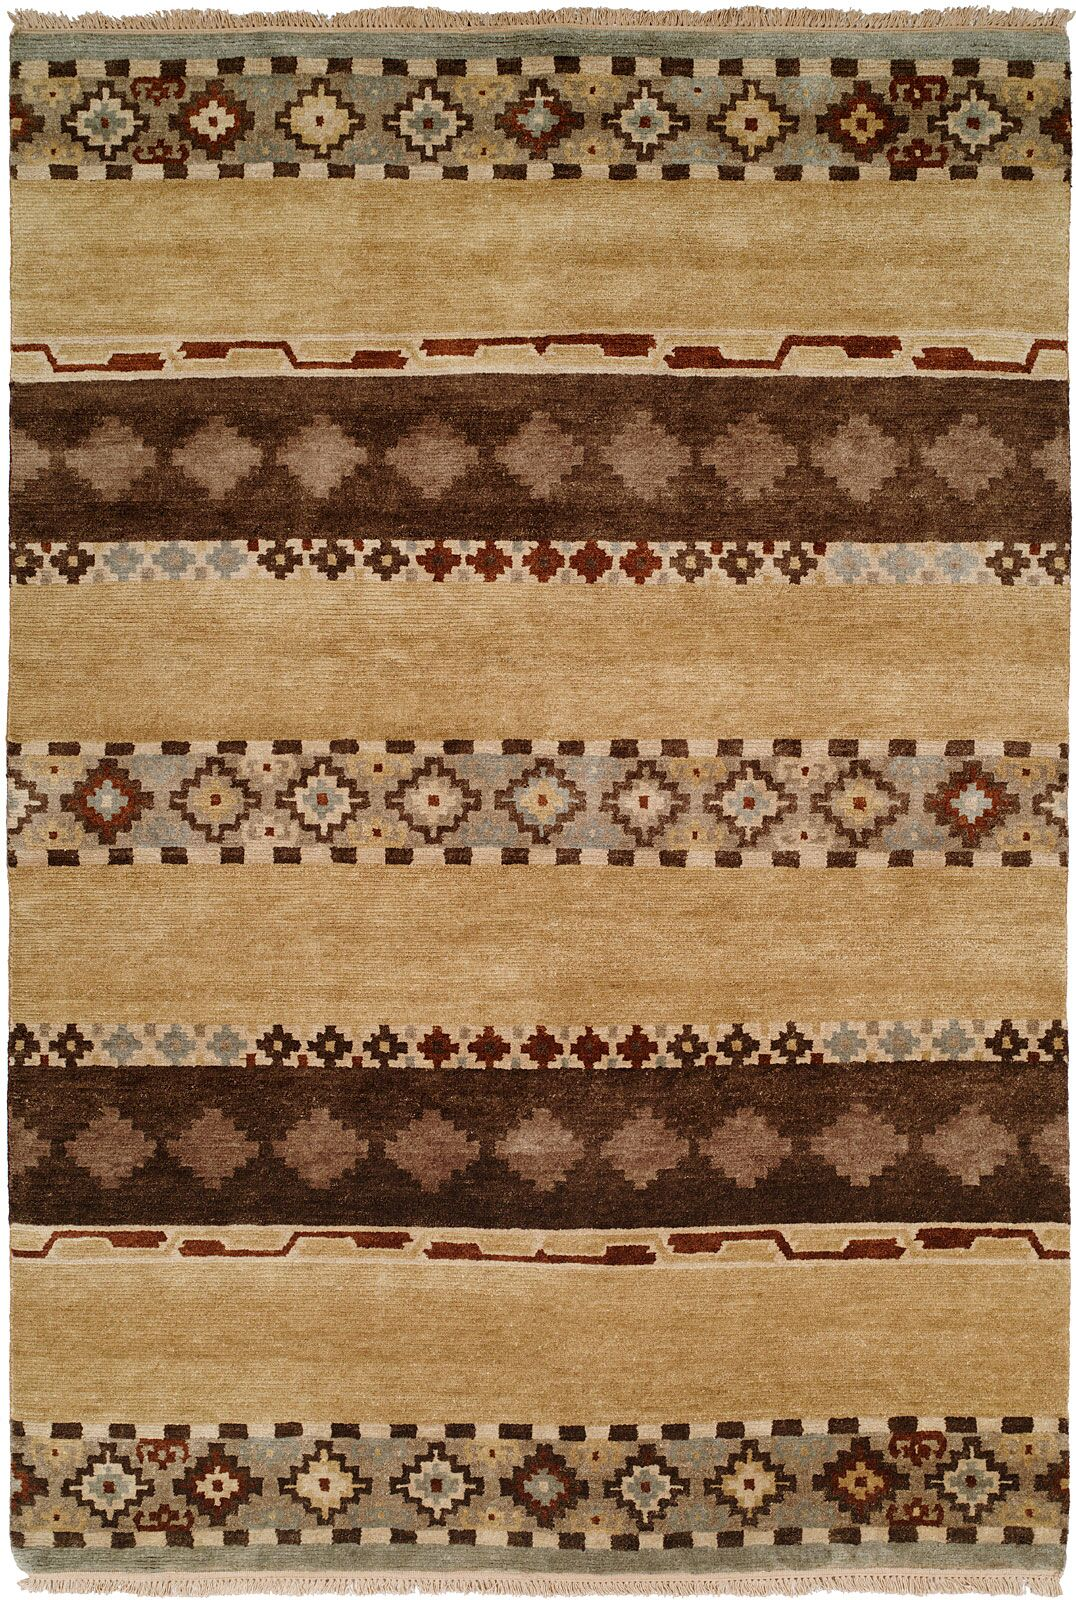 Shayla Hand-Knotted Wool Brown Area Rug Rug Size: Runner 2'6